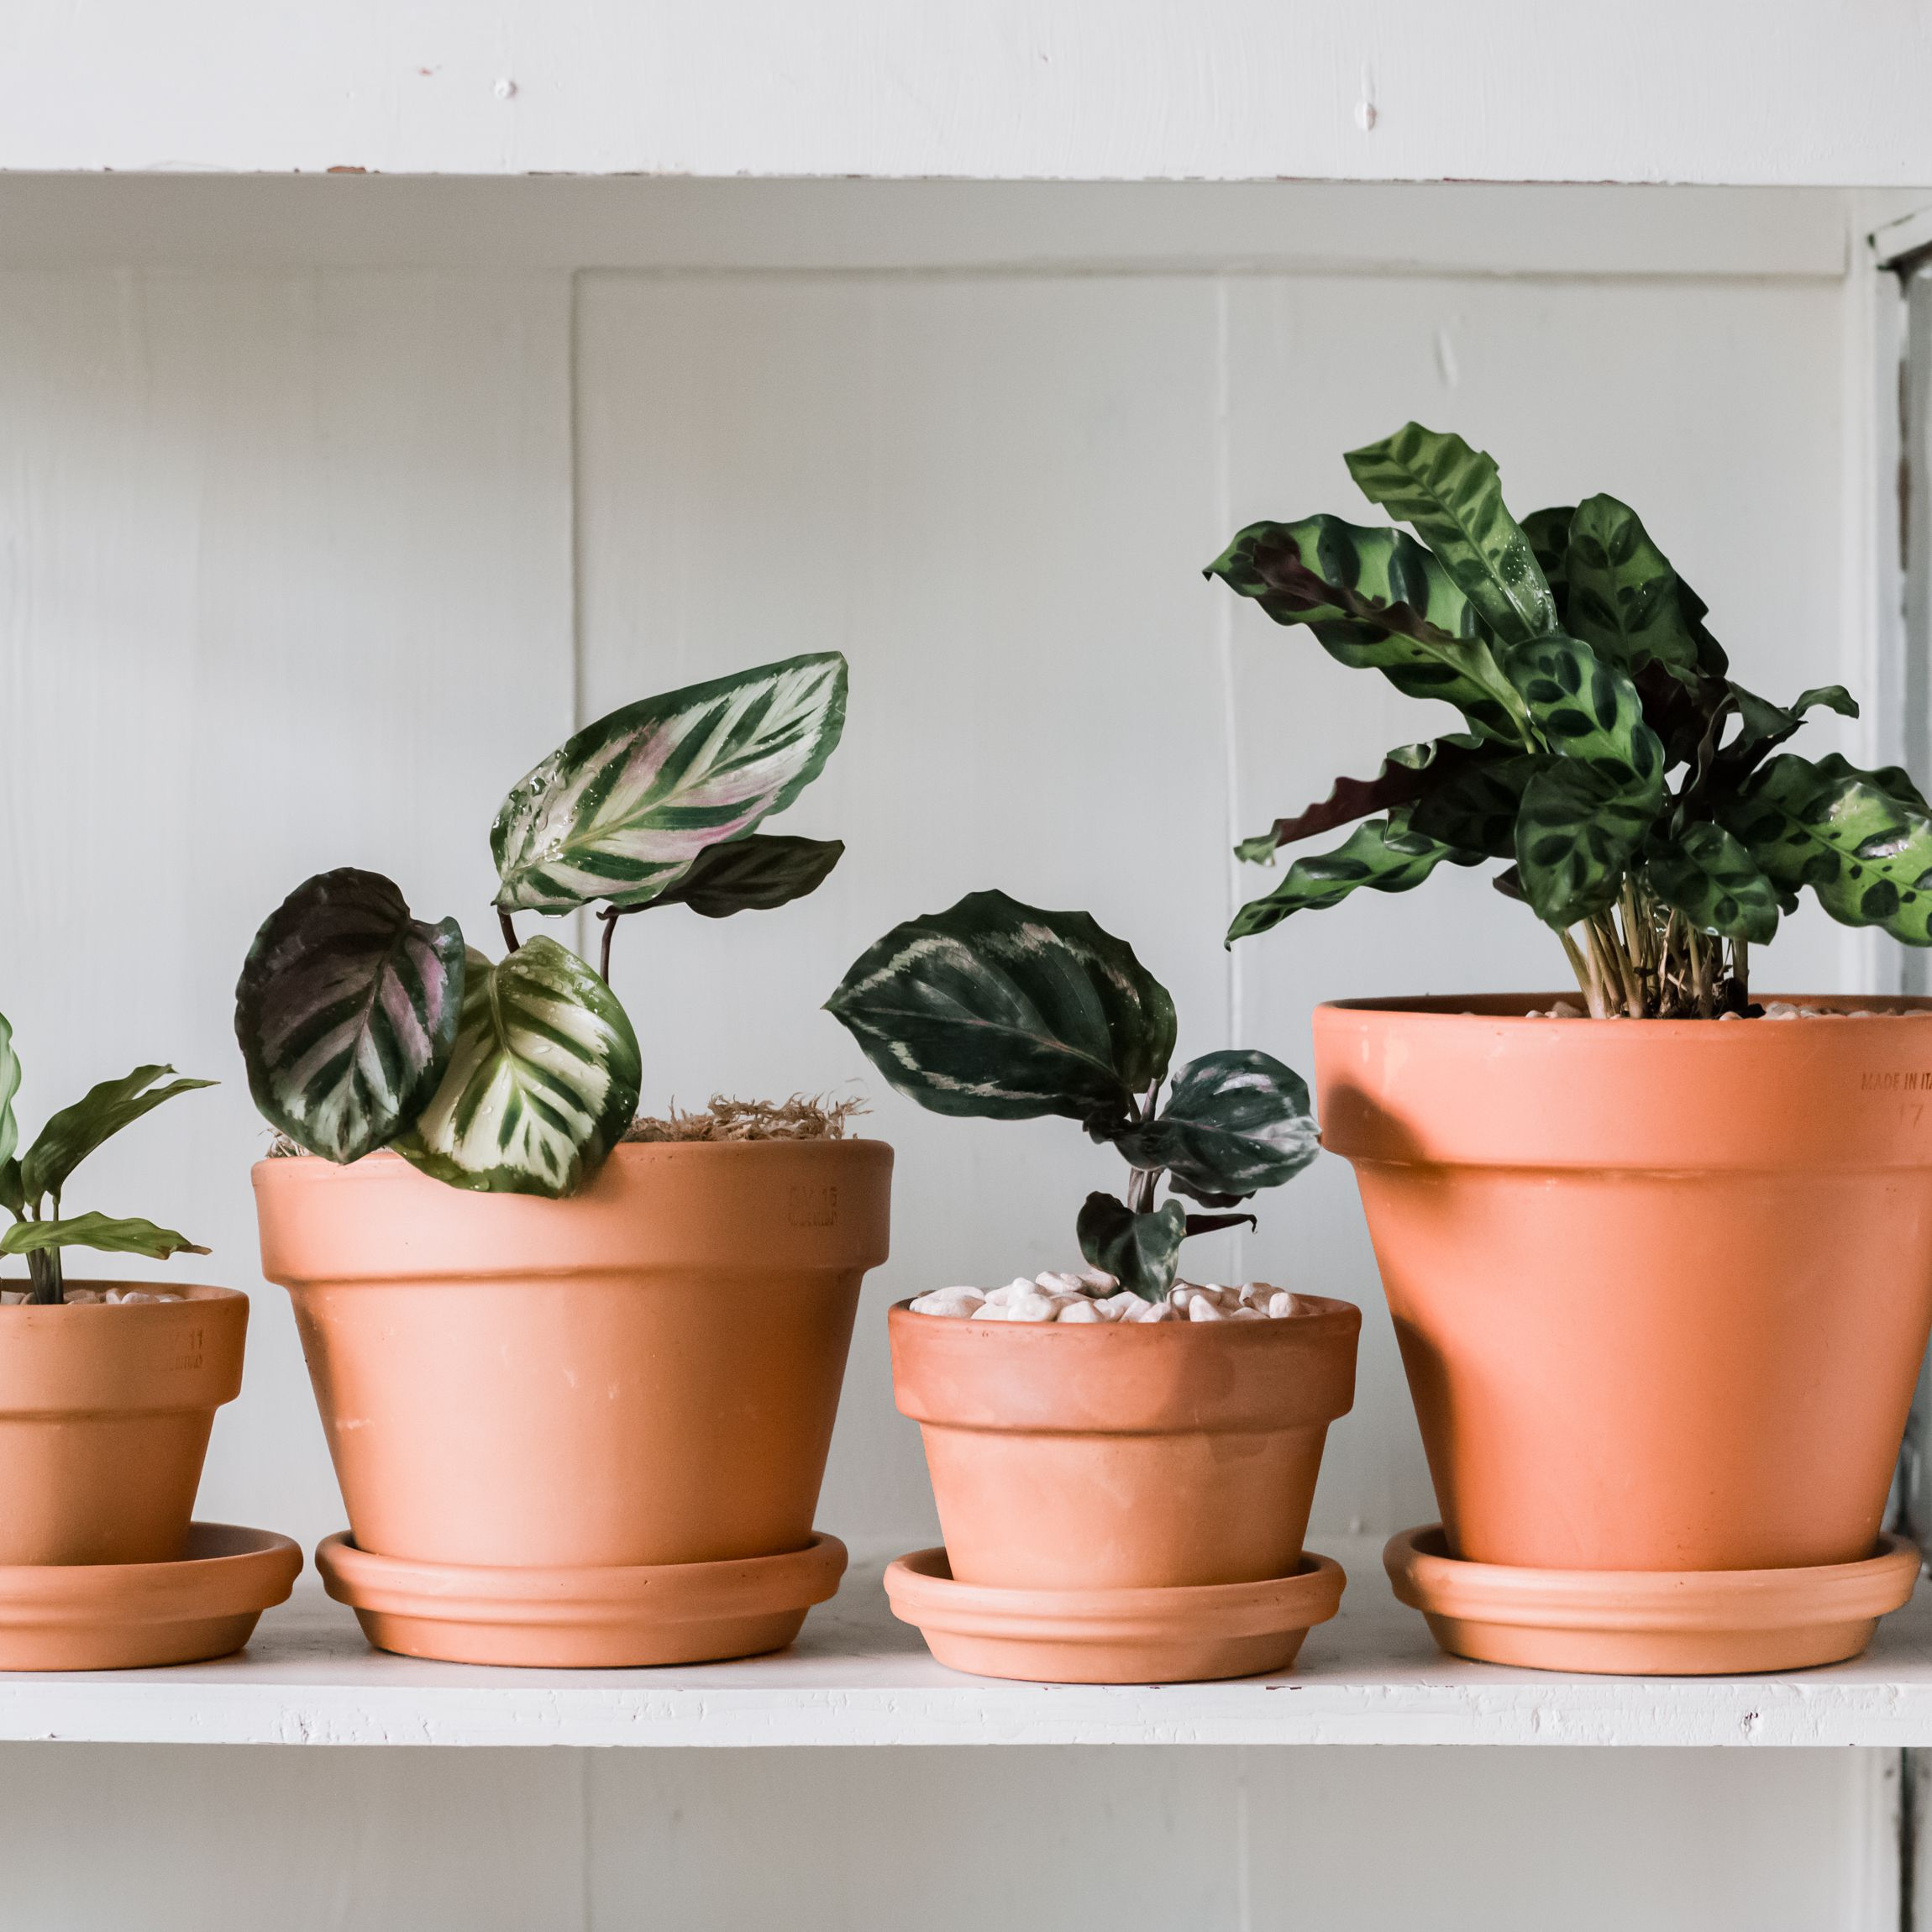 Calathea Indoor Plant Care Growing Guide